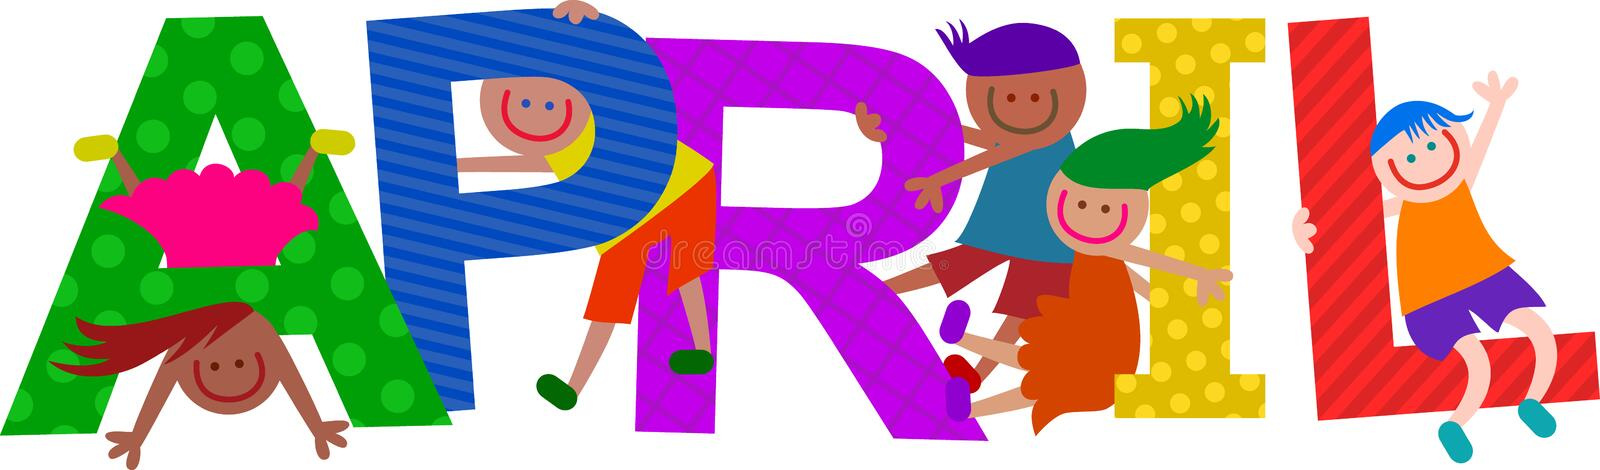 Enfants heureux April Text illustration stock